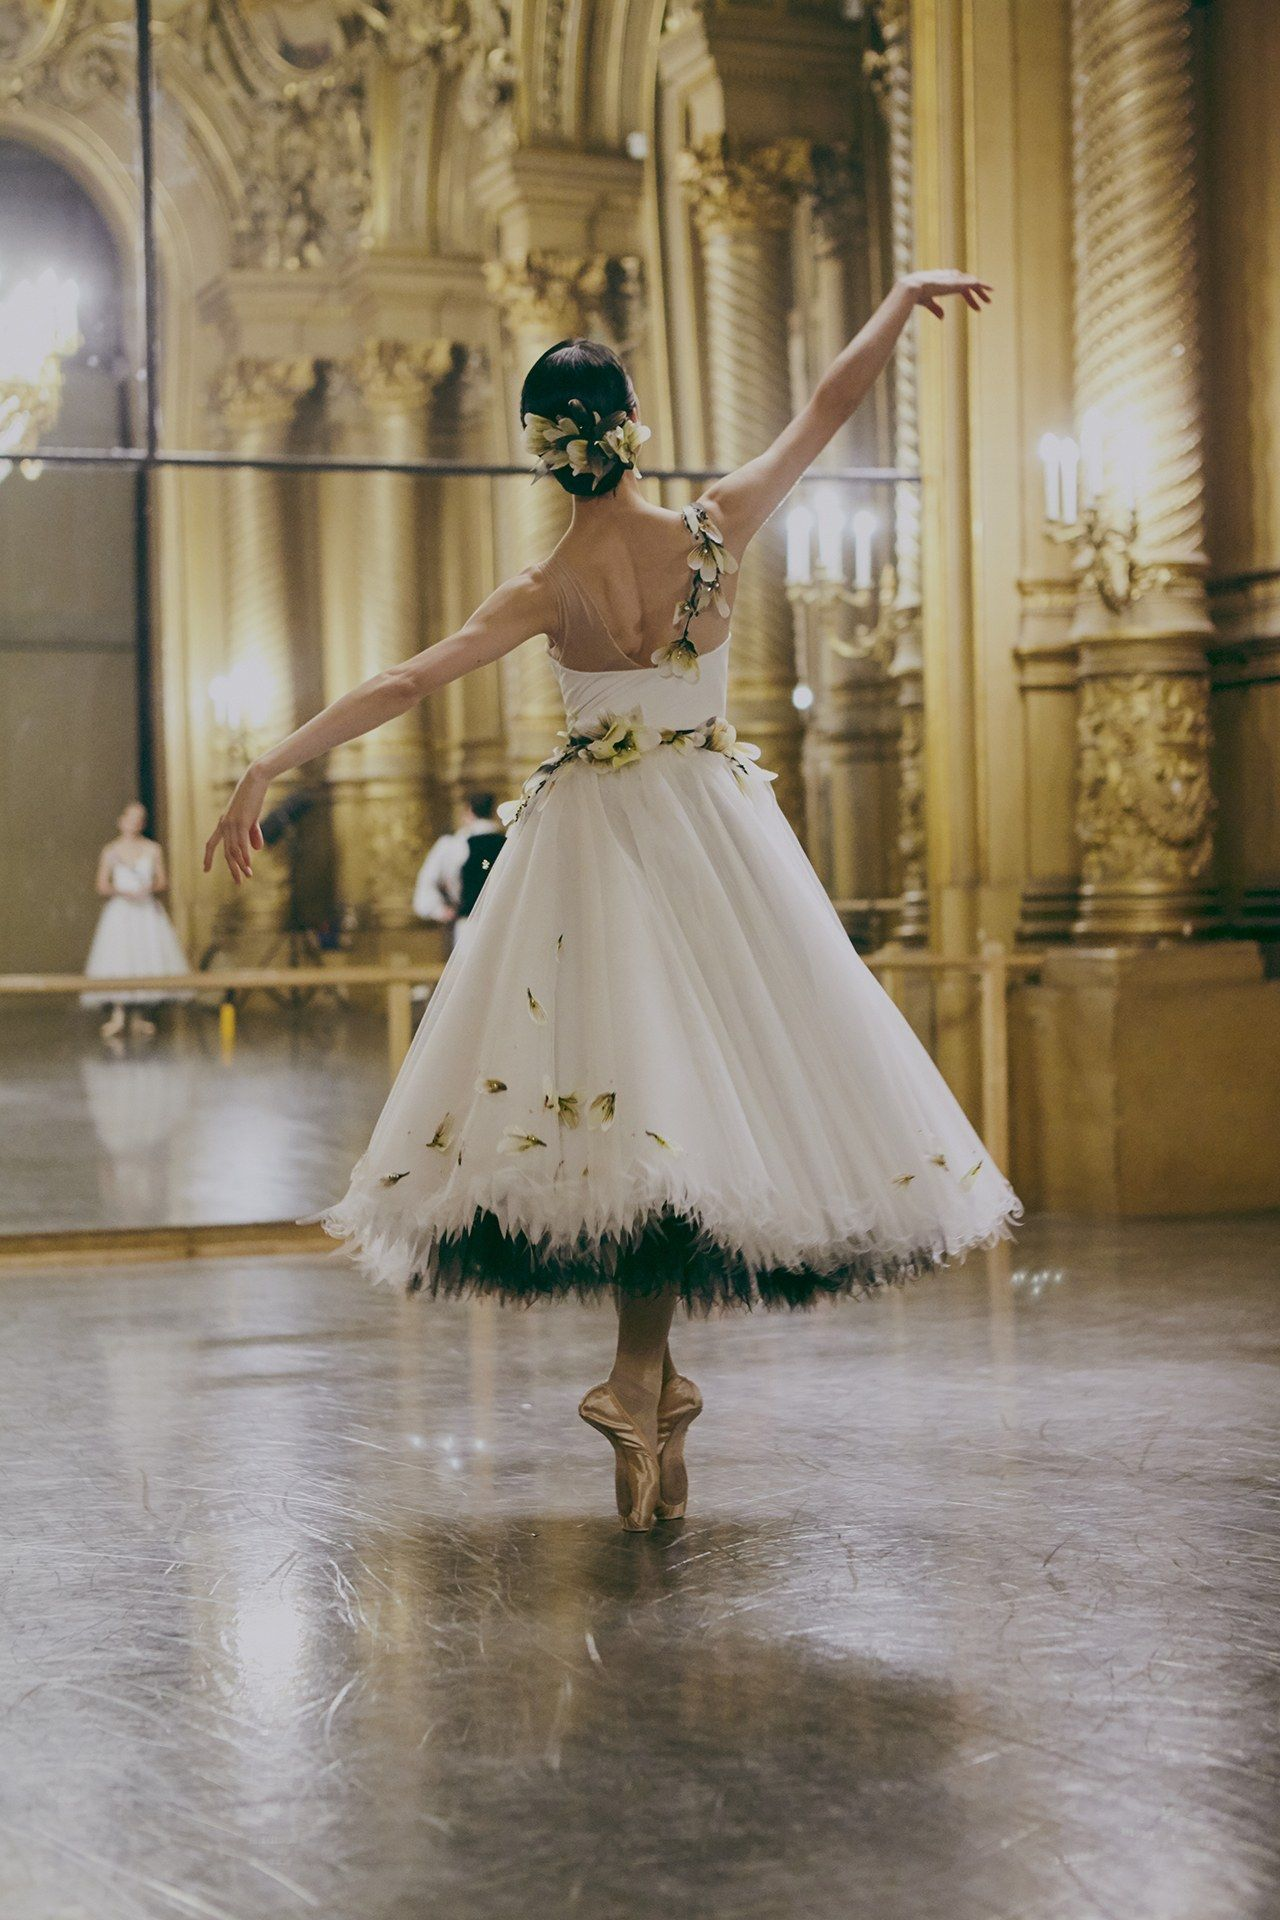 Behind the scenes at the 2019 Paris Opera Ballet gala